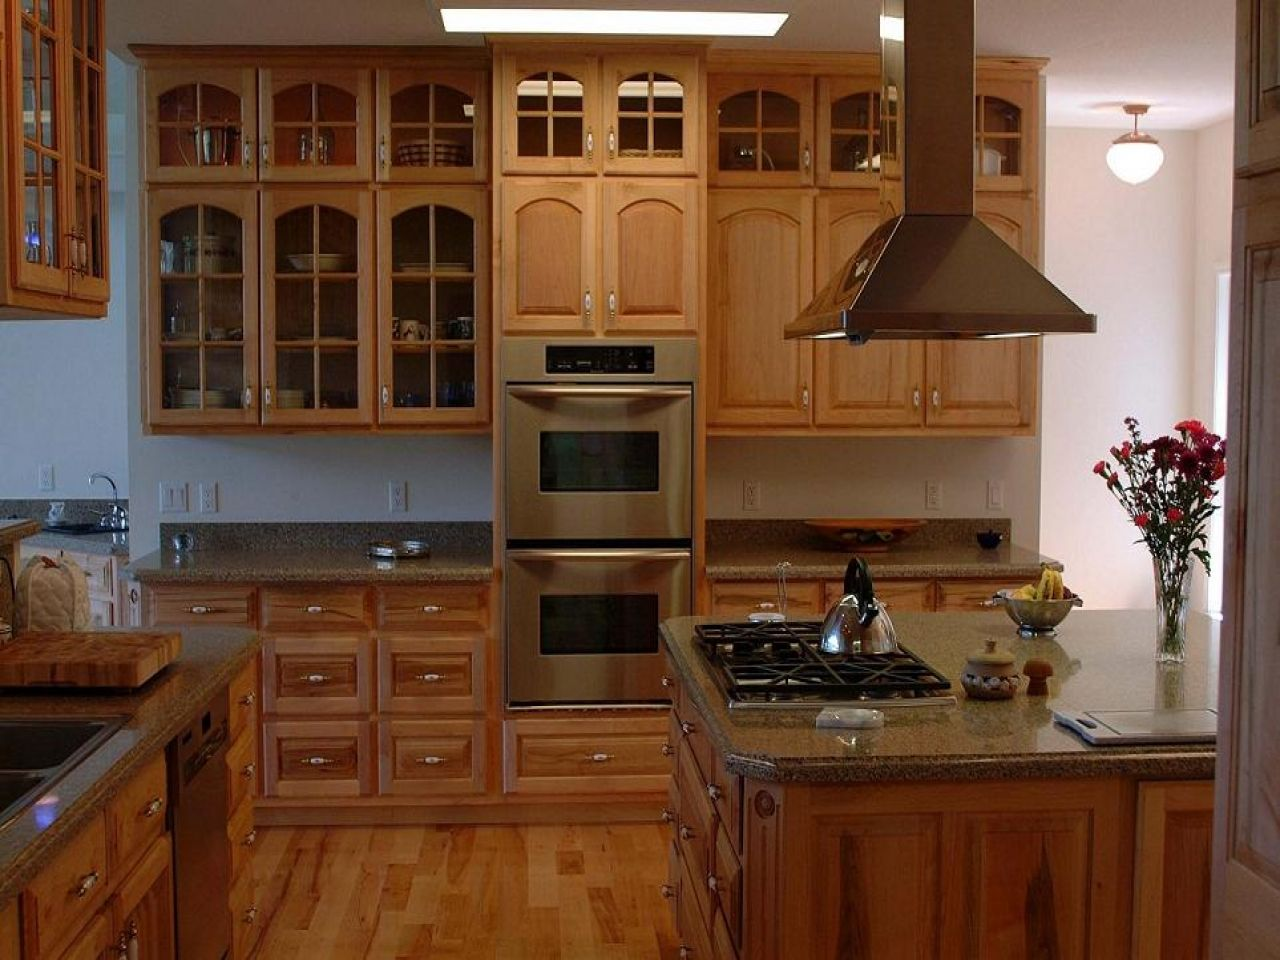 Image result for painted maple cabinets with colorful ... on Natural Maple Kitchen Backsplash Ideas With Maple Cabinets  id=51619